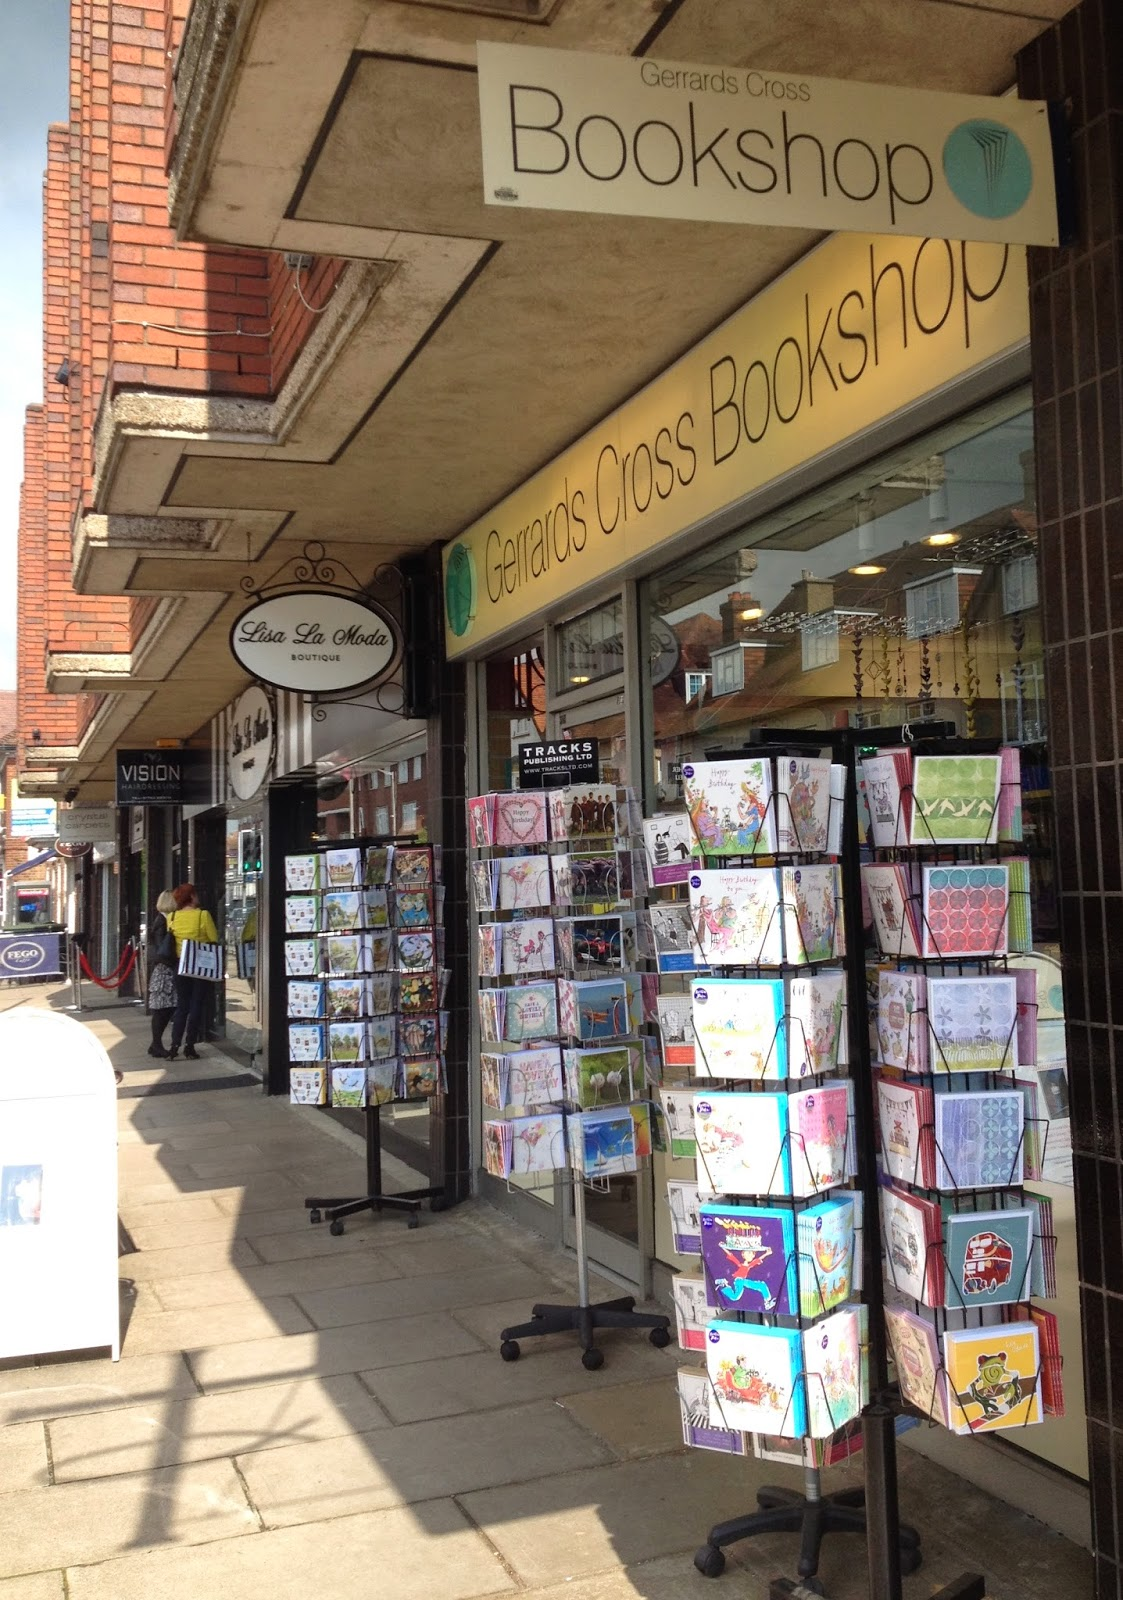 Gerrards Cross Bookshop The Bookshop Around The Corner The Perfect Gift